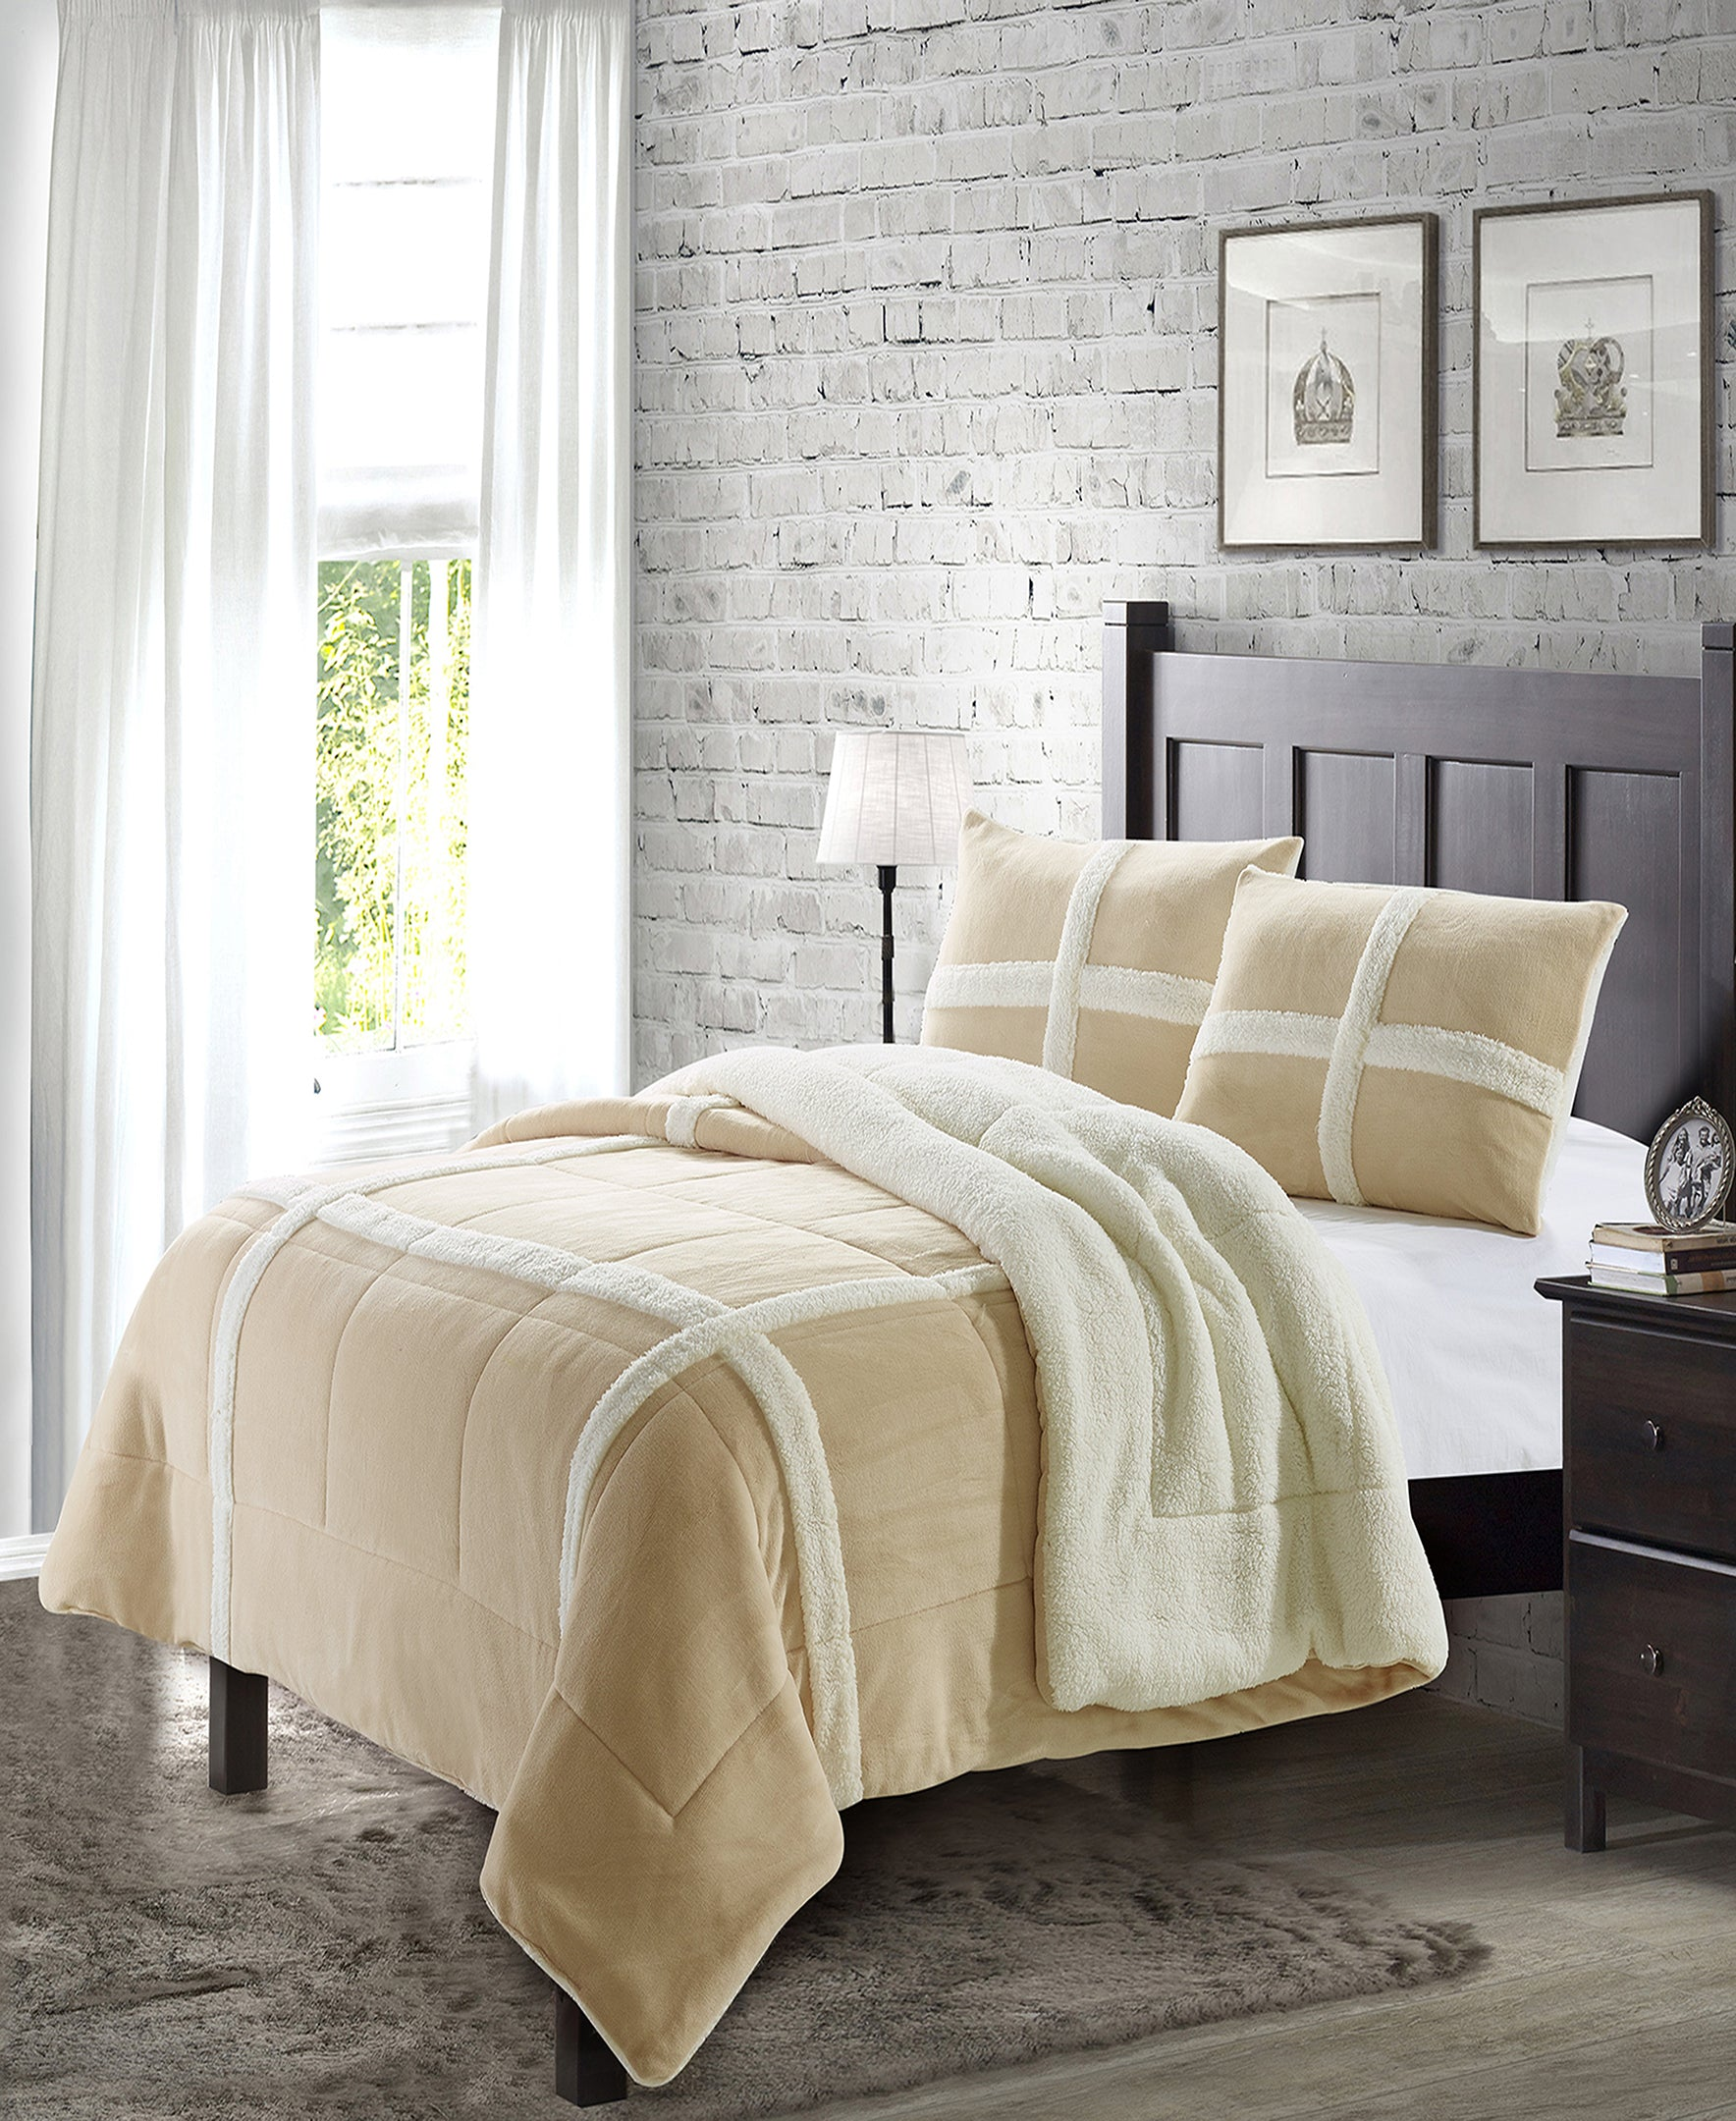 """Simple Elegance by Ben&Jonah 3 Piece Queen Size Flannel Blanket Set with Sherpa Backing (90"""" x 90"""") - Tan"""